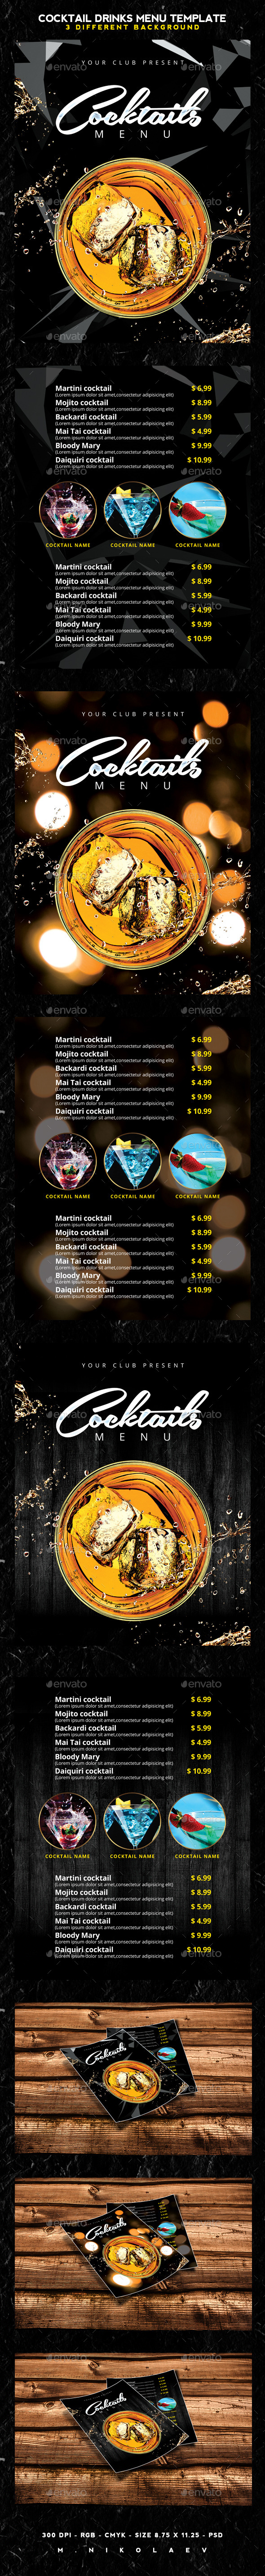 Cocktail Drinks Menu - Food Menus Print Templates